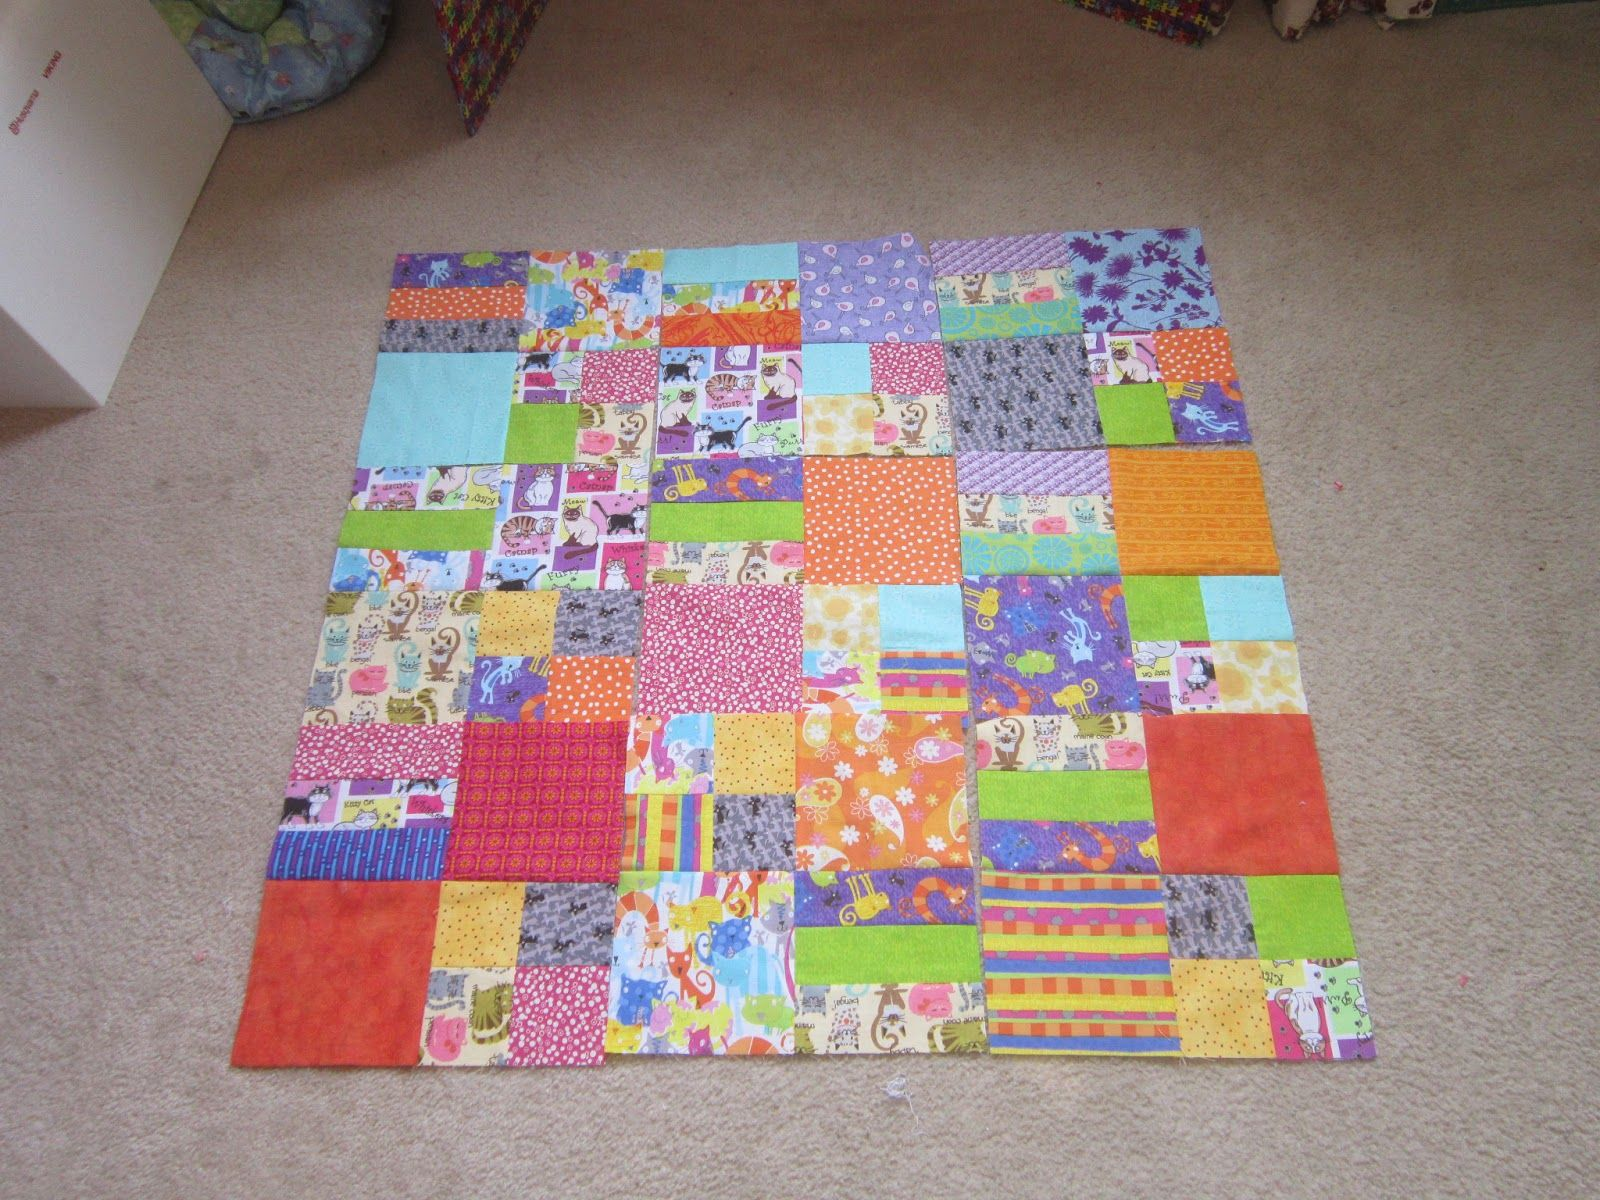 easy lap quilt / first quilt | kids sewing projects | Pinterest ... : easy first quilt - Adamdwight.com